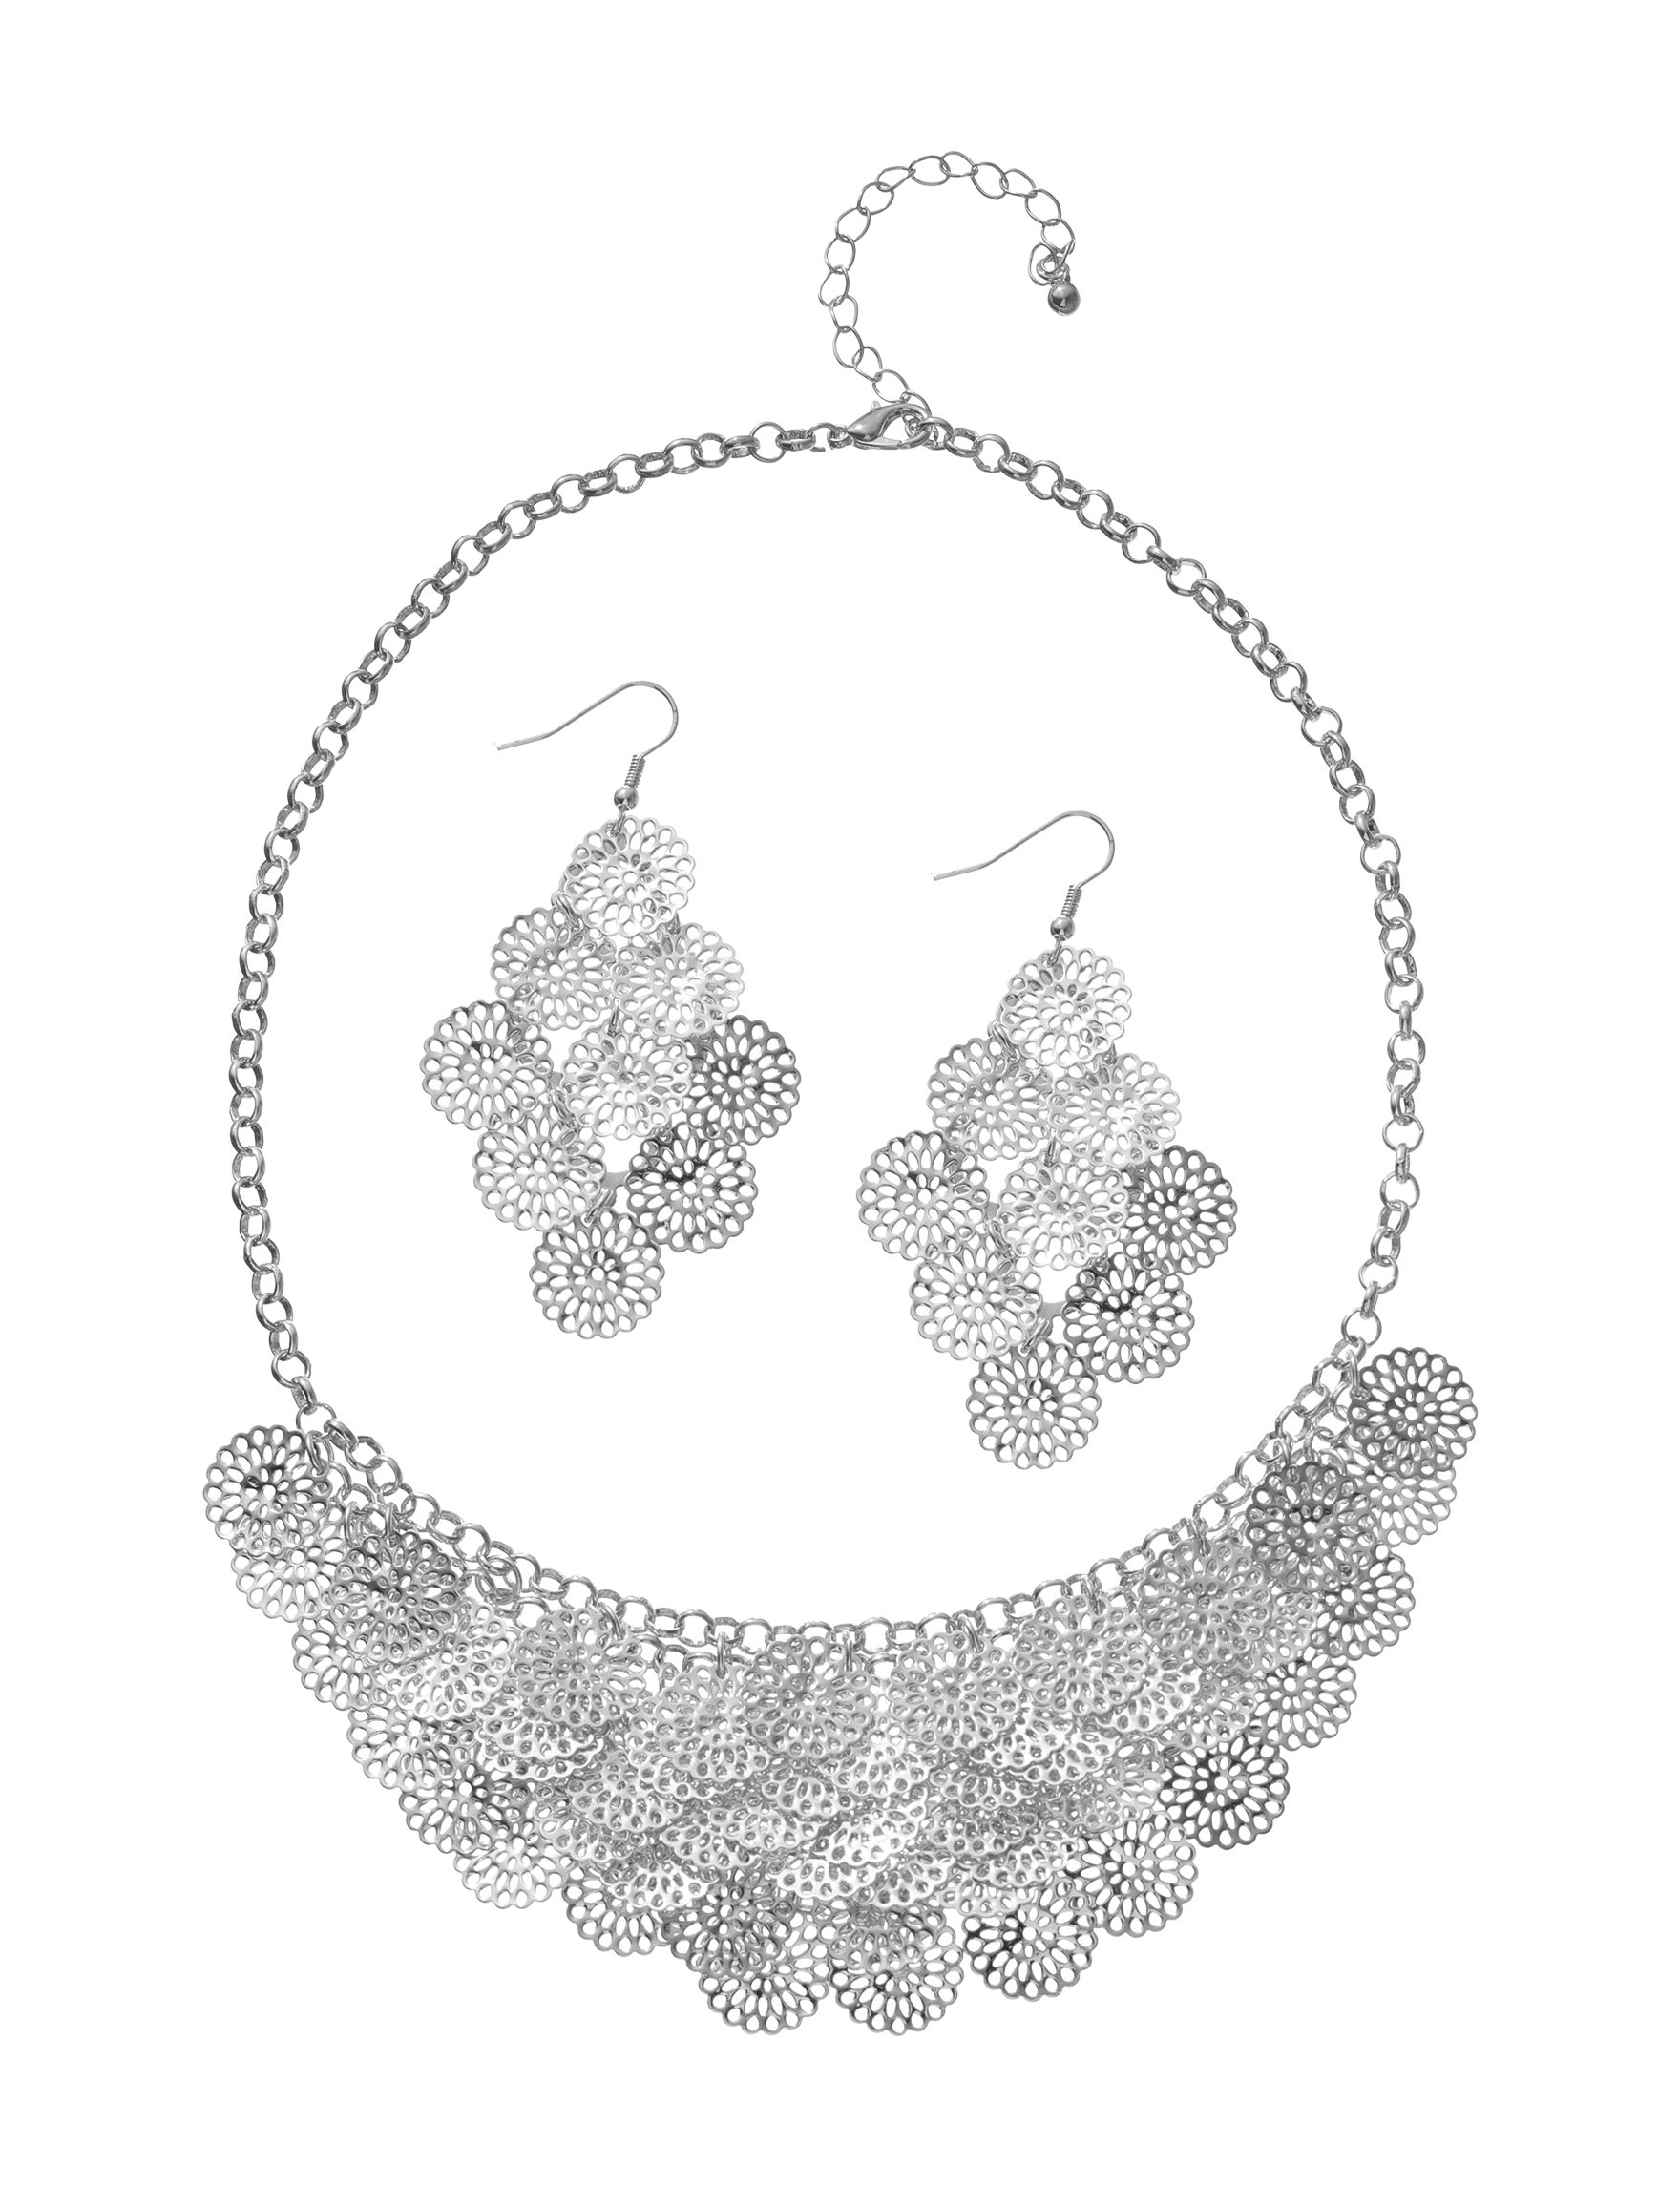 Hannah Silver Drops Earrings Jewelry Sets Necklaces & Pendants Fashion Jewelry